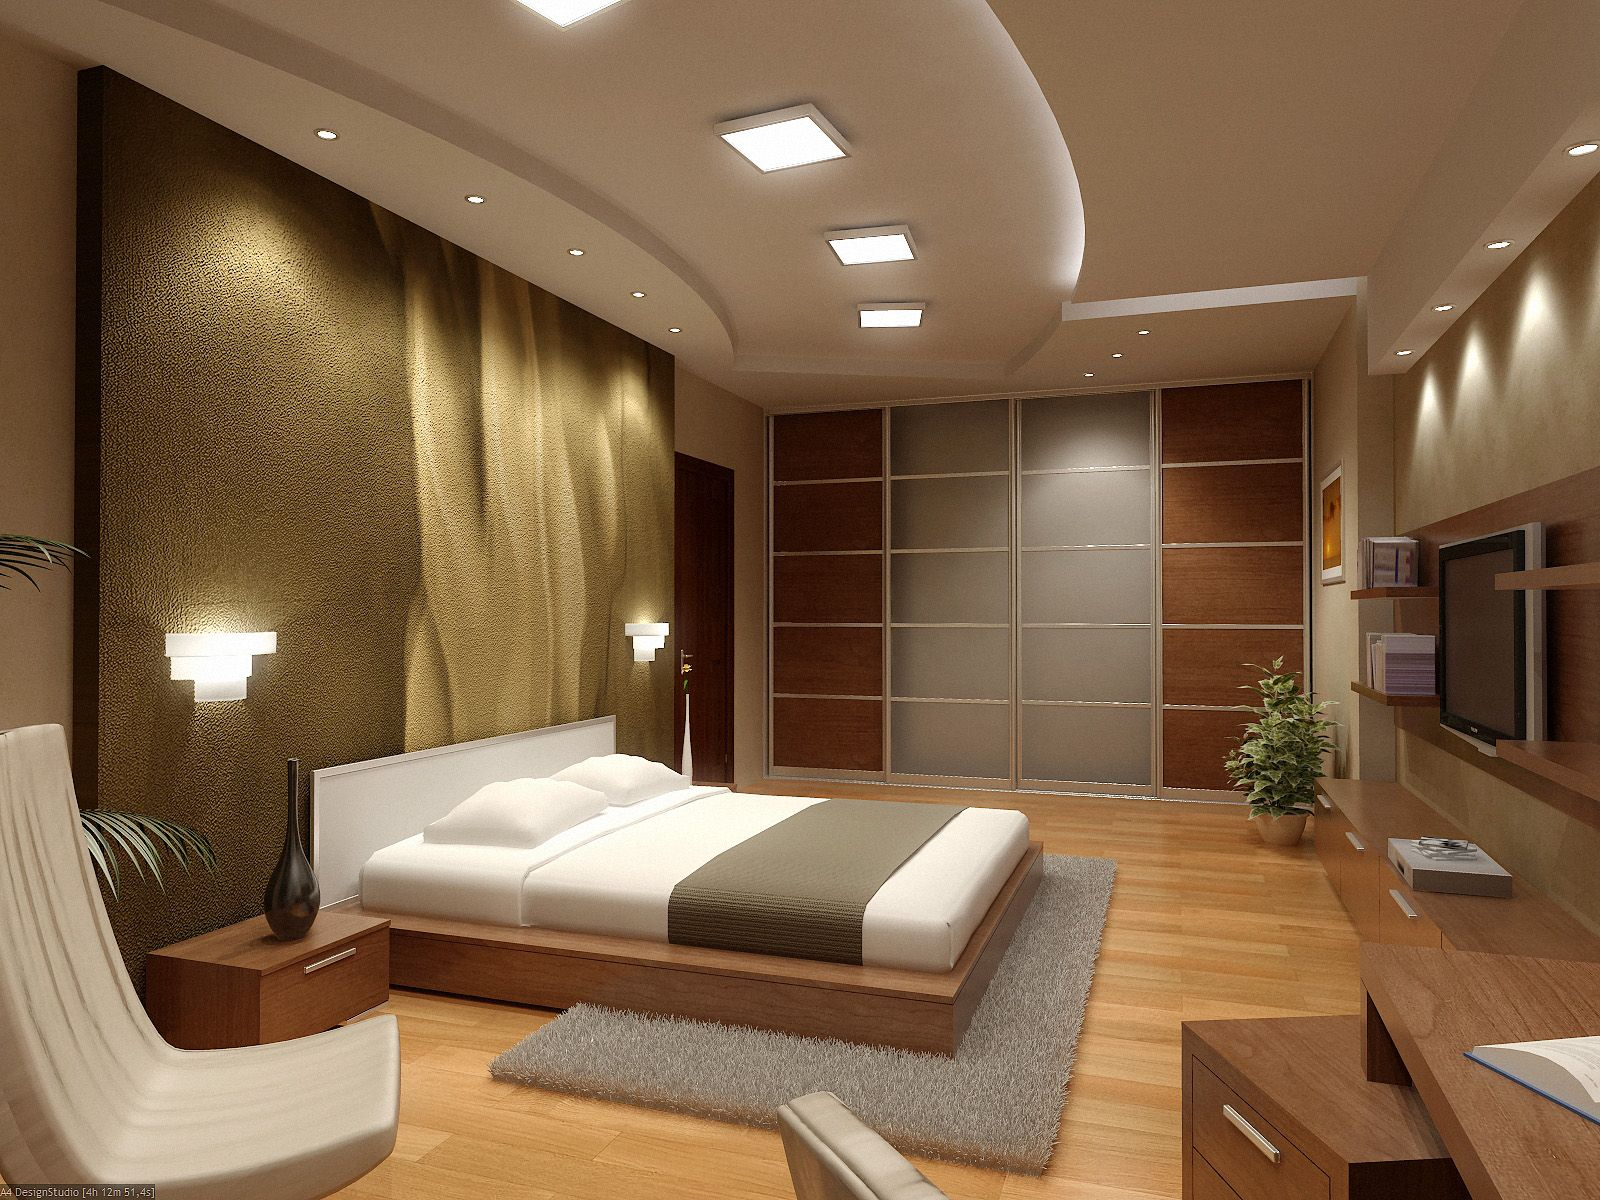 New home designs latest modern homes luxury interior for Interior bed design images